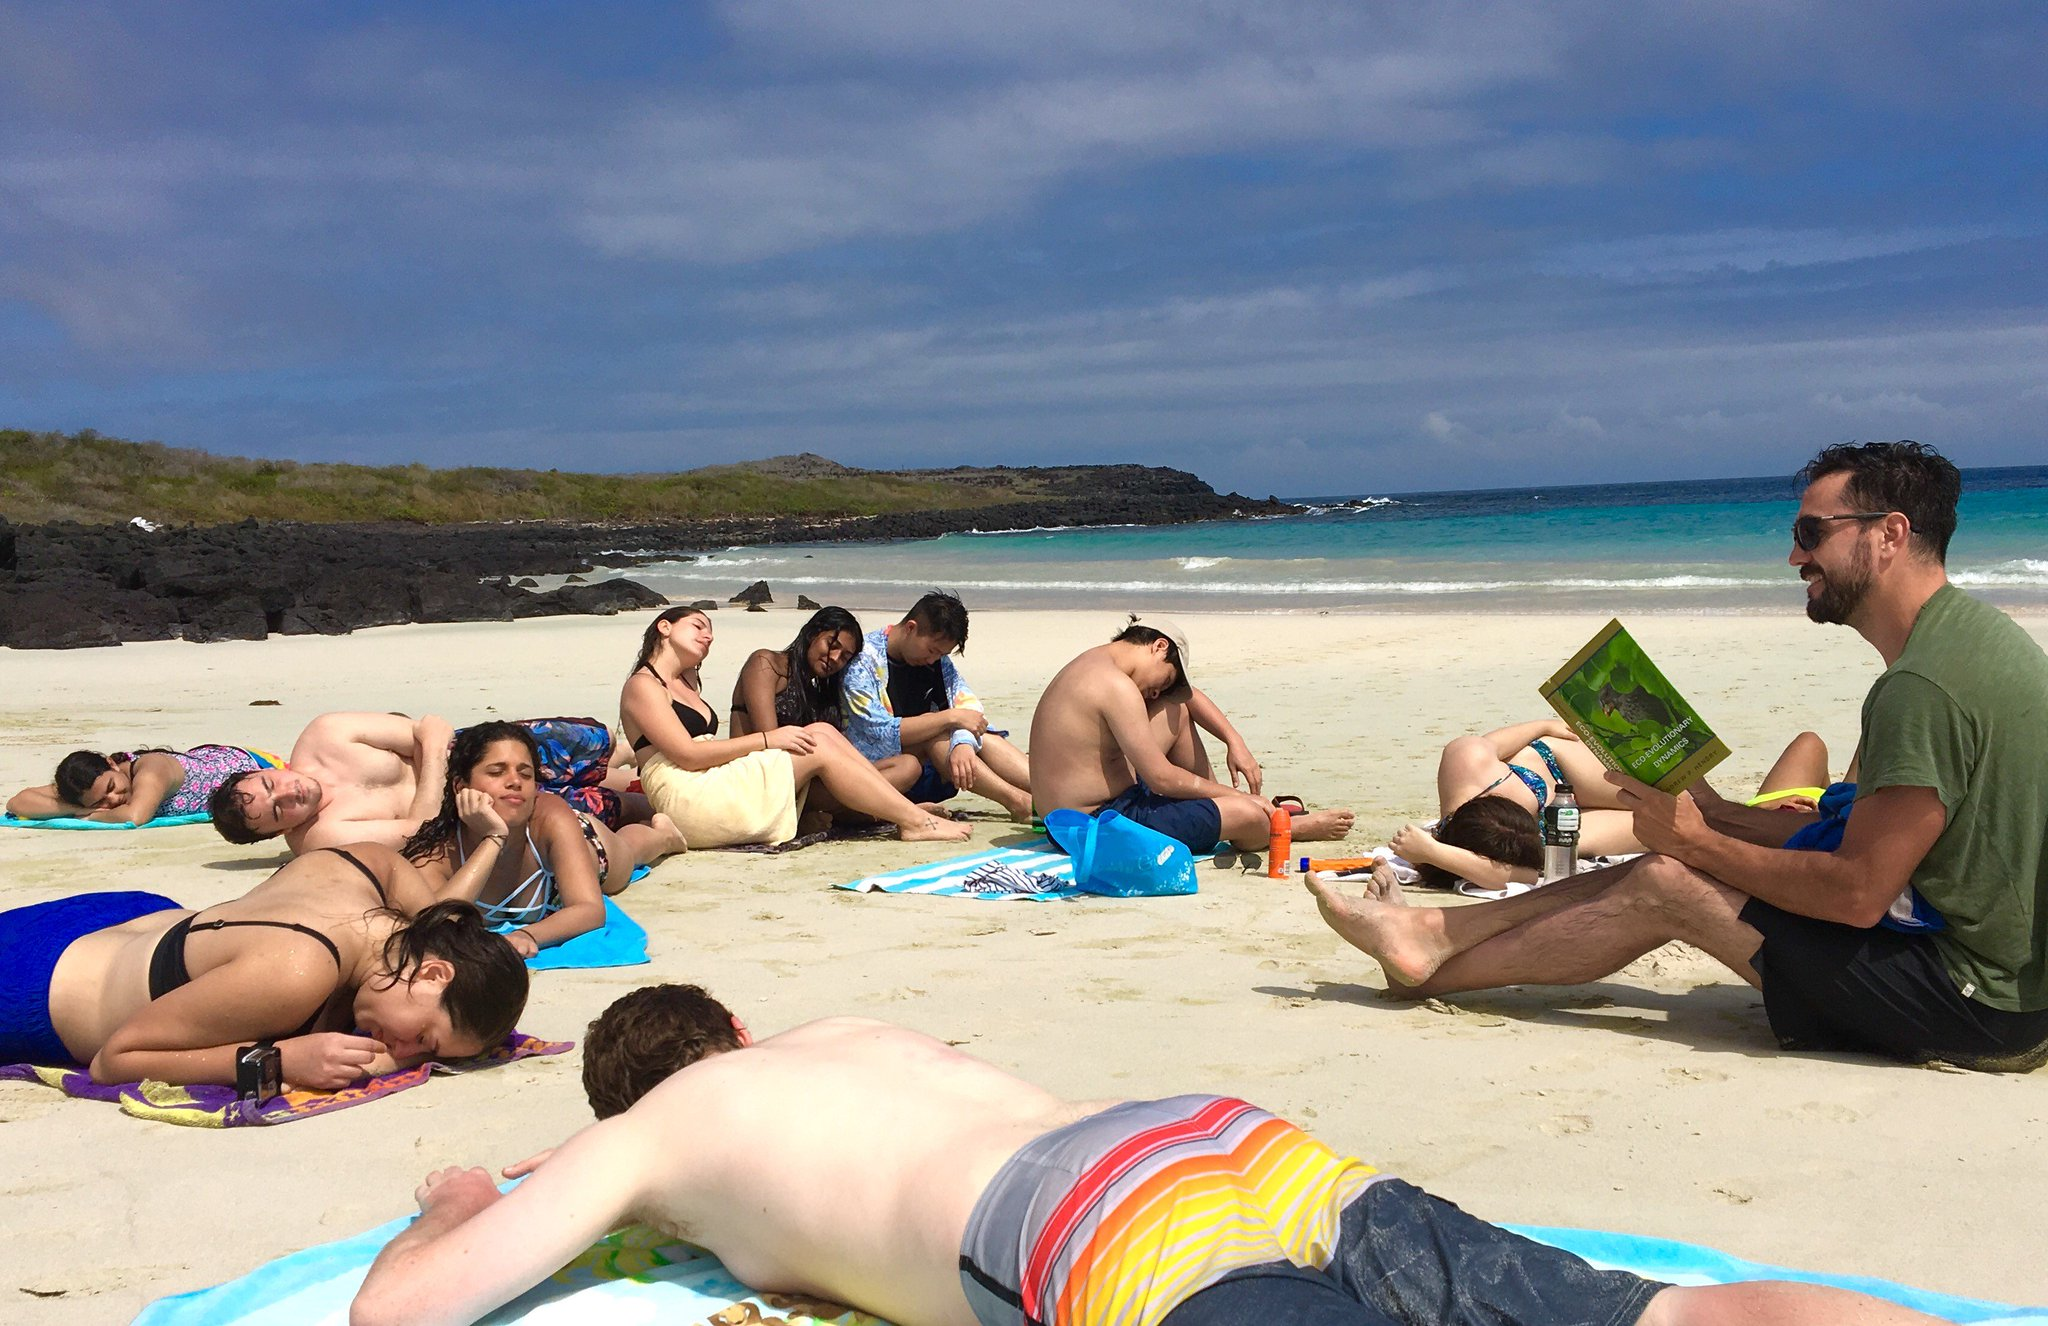 #PeopleWhoFellAsleepReadingMyBook An entire class from College of Staten Island-CUNY, NY, while in the field in Galapagos. Read by J Chaves. https://t.co/tvZttwwVXp